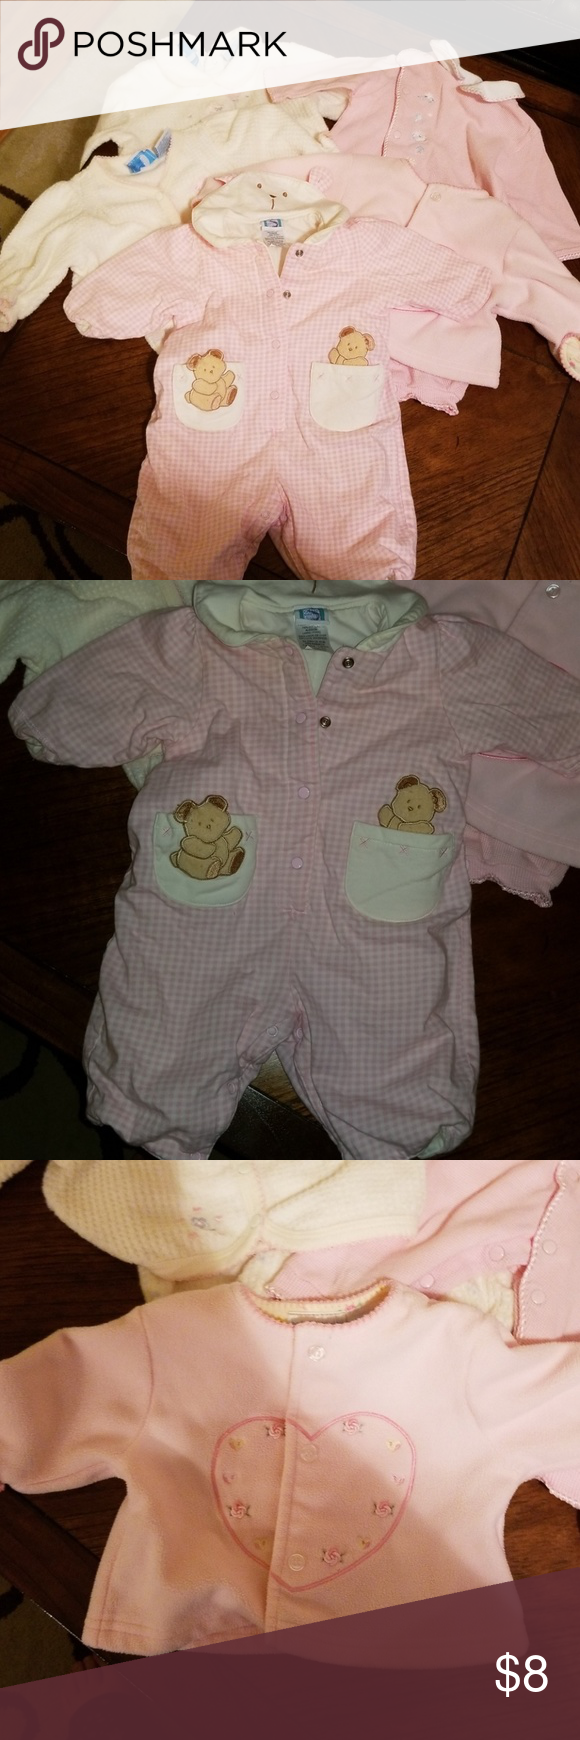 1fc6431f298b Bundle of gently used baby girl winter clothes in 2018